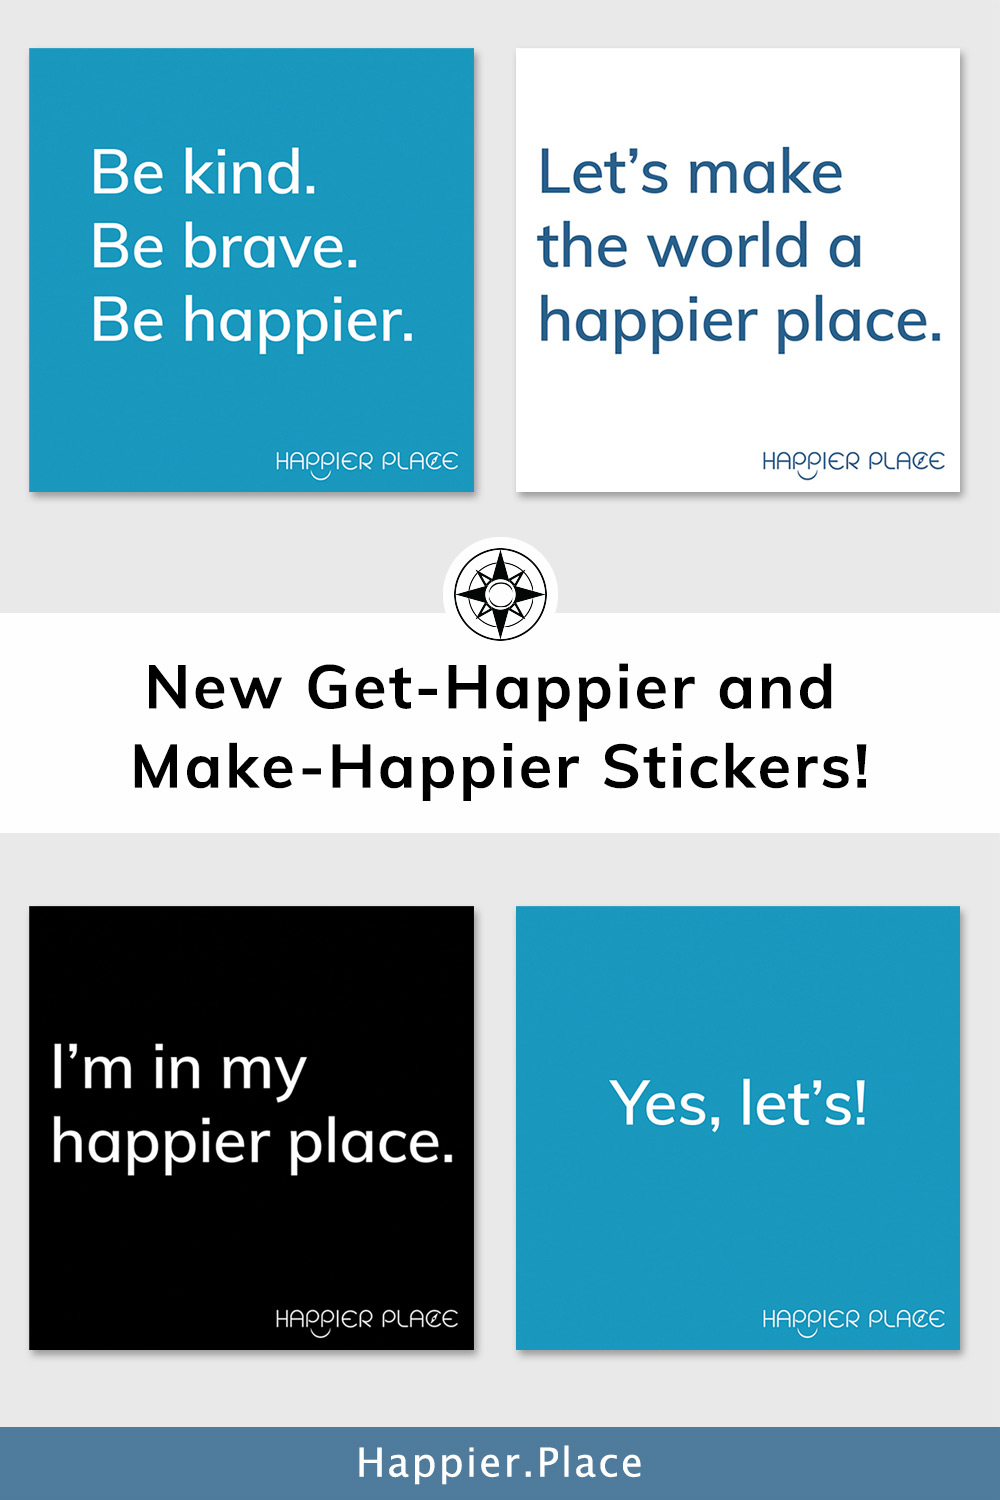 New Get-Happier and Make-Happier Stickers